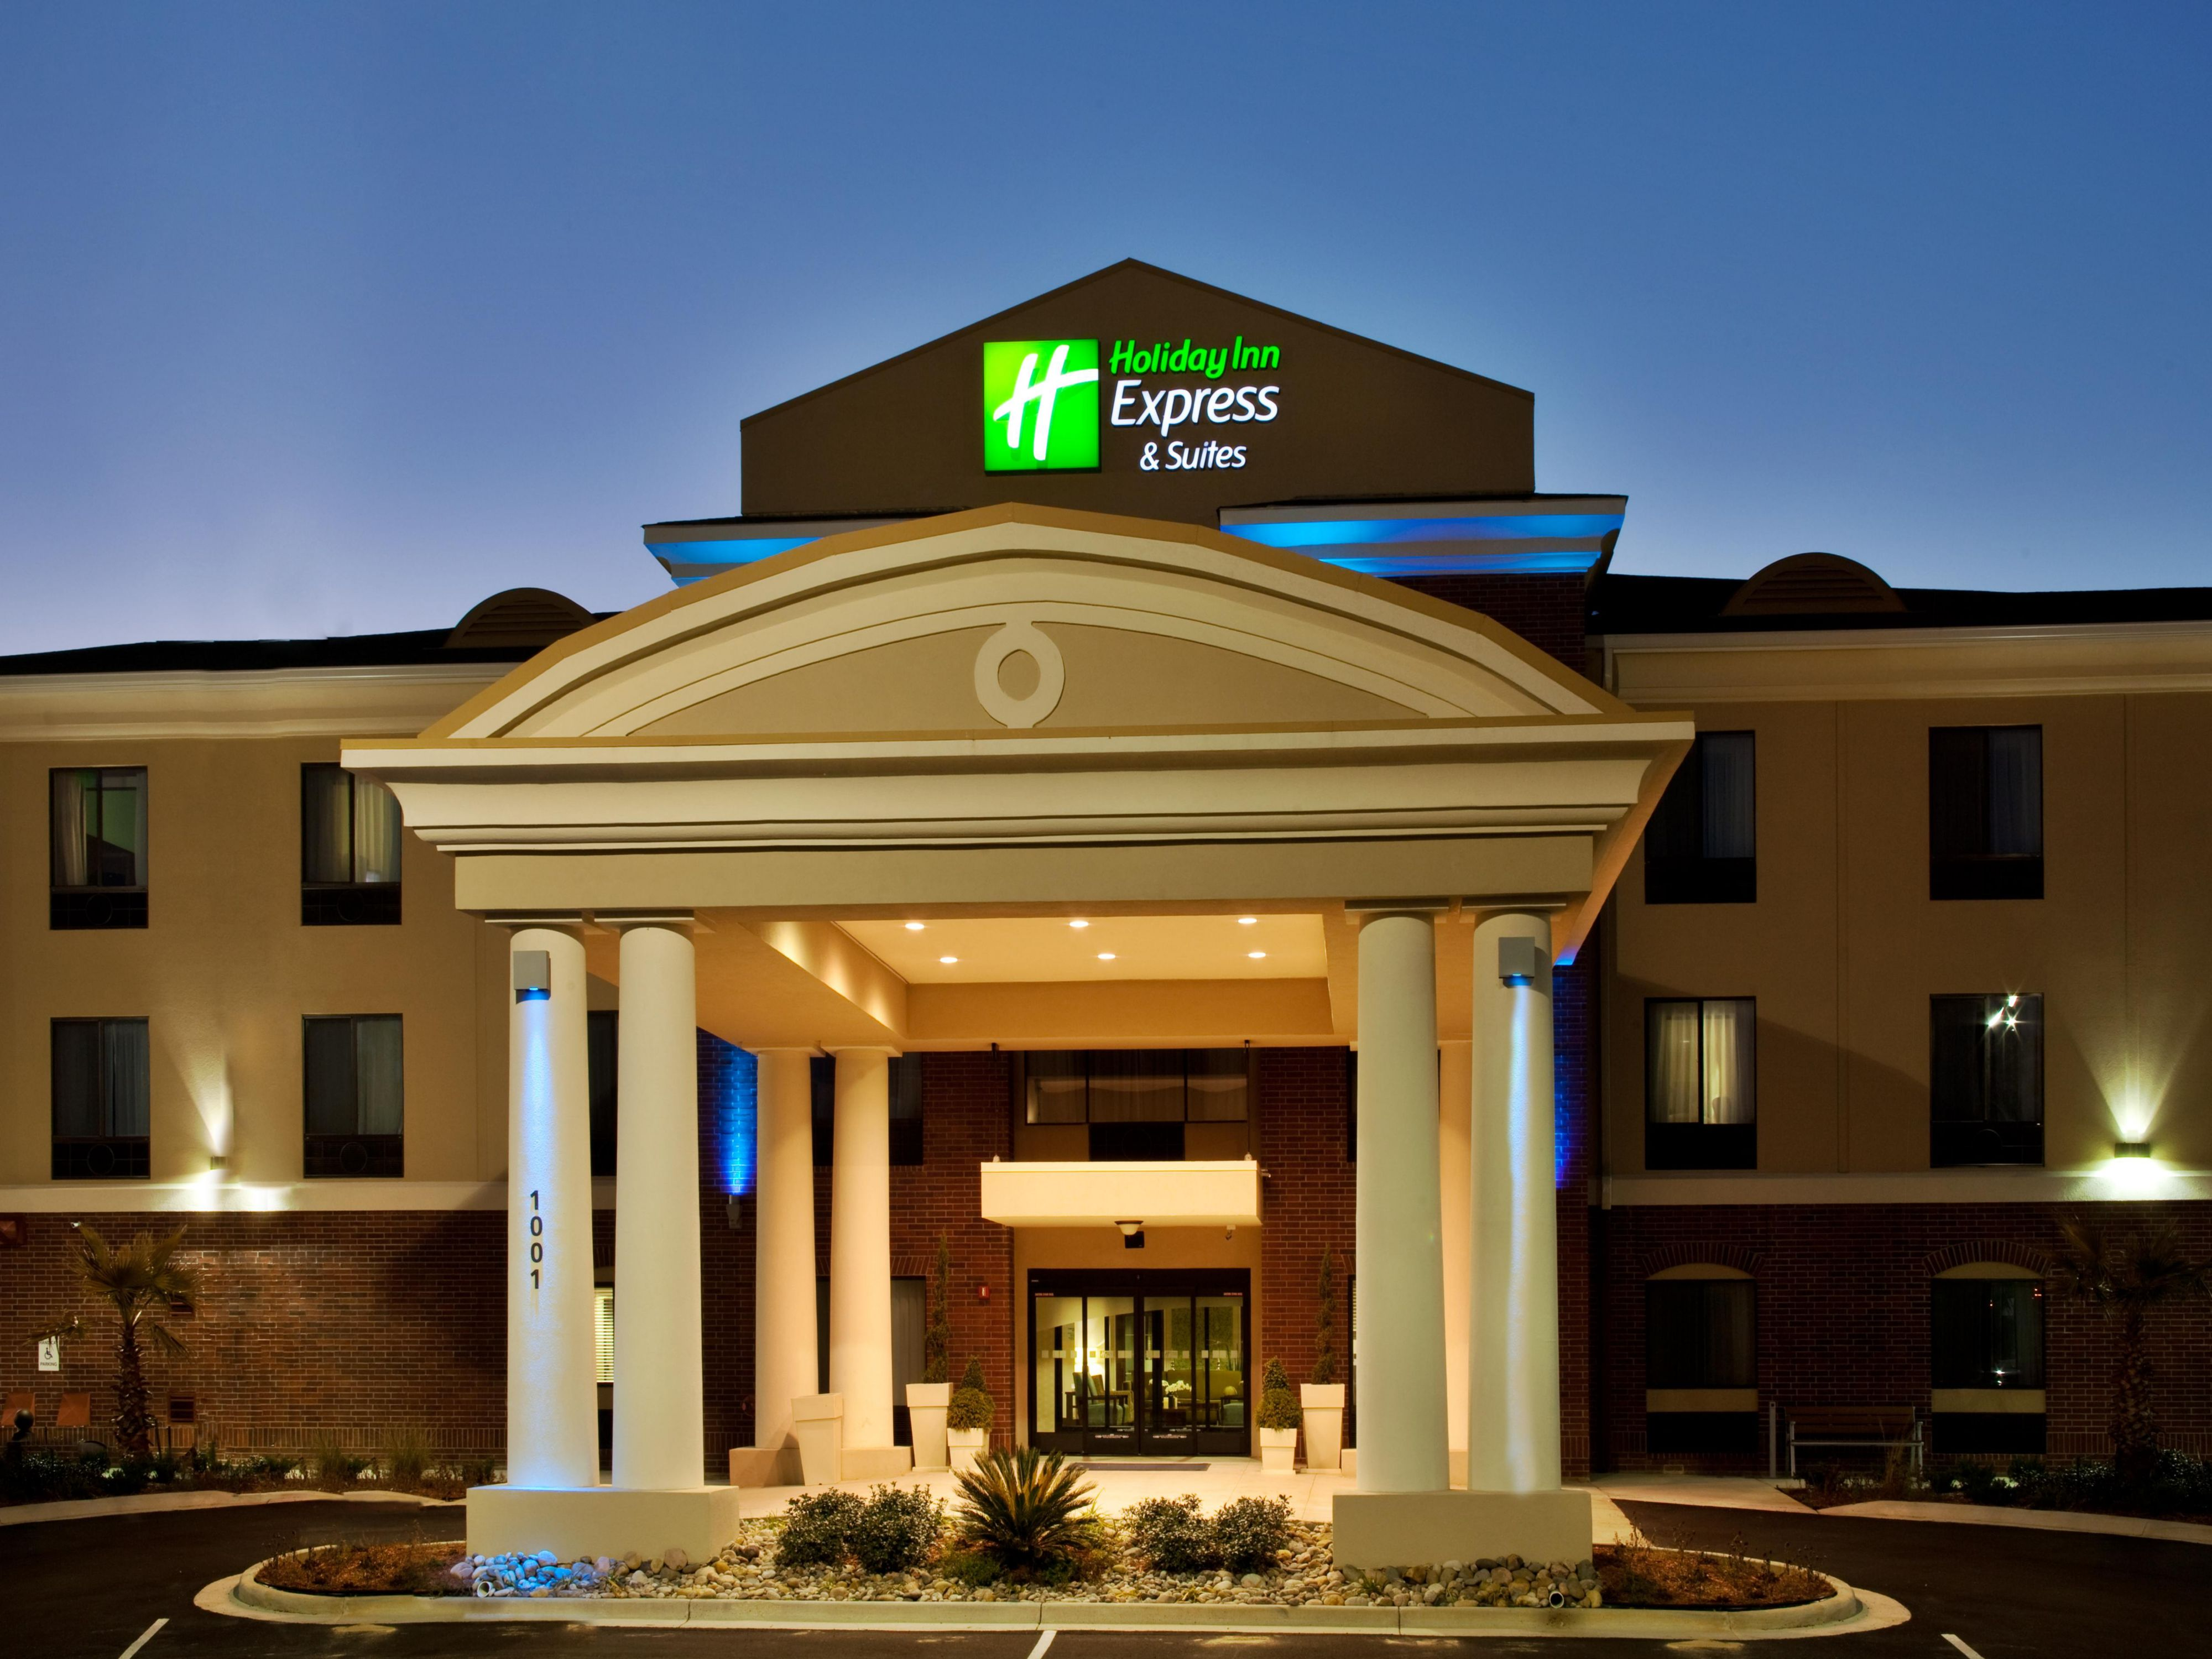 Holiday Inn Express Picayune-Stennis Exterior Feature